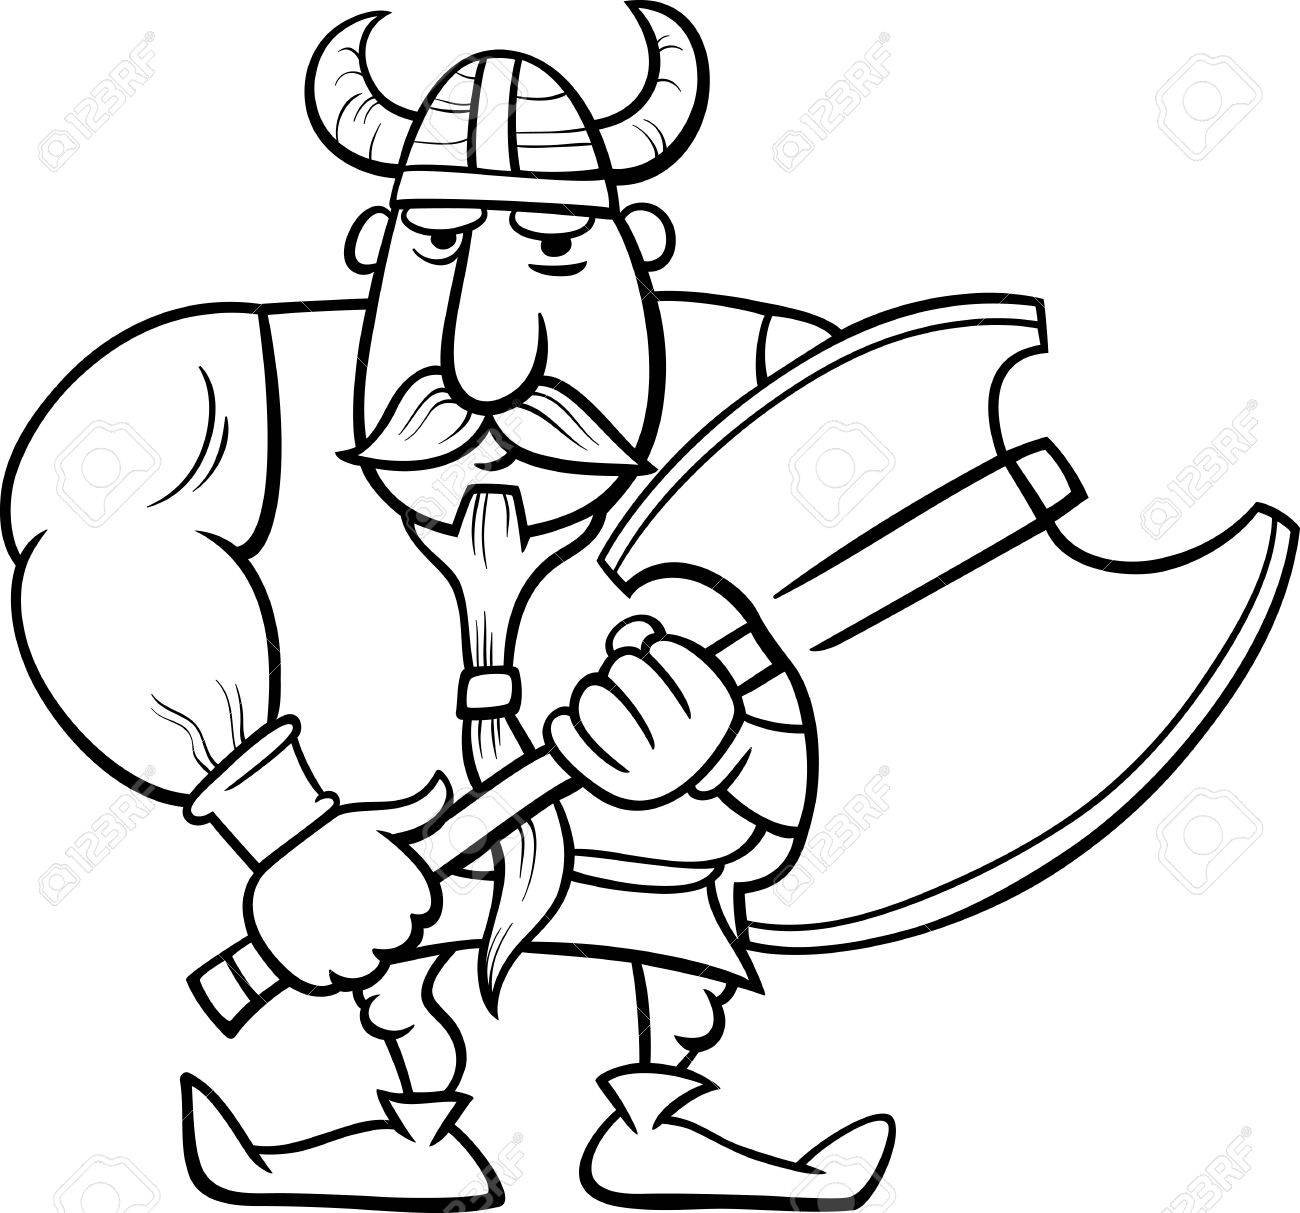 Black And White Cartoon Illustration Of Viking Or Knight With